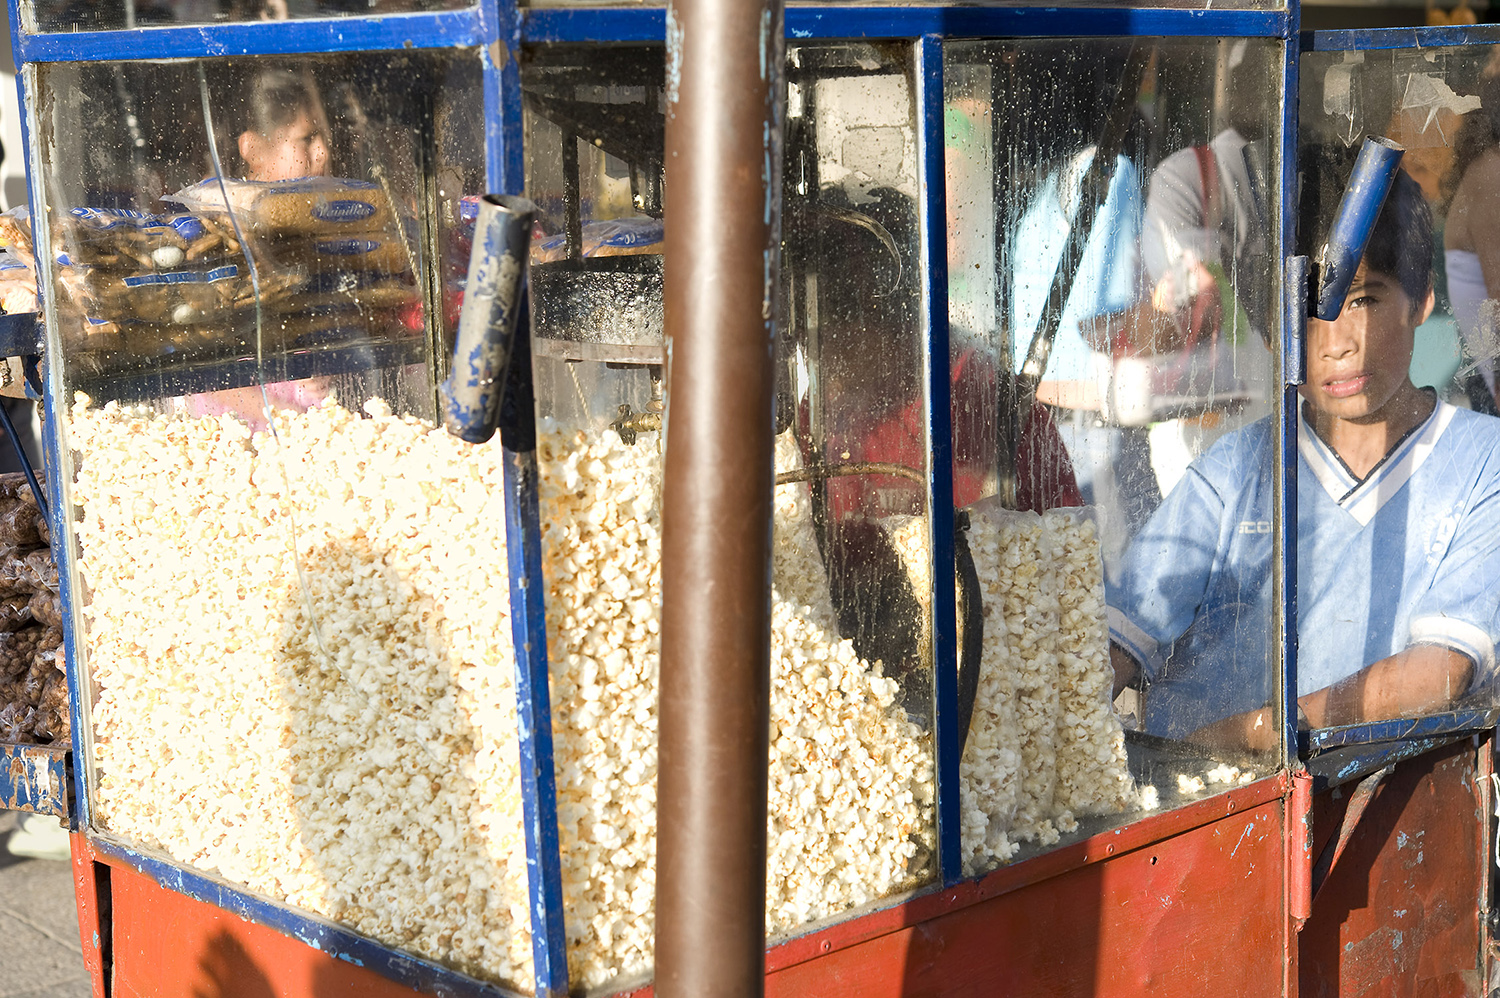 MountainofMaize_blog_popcorn.jpg